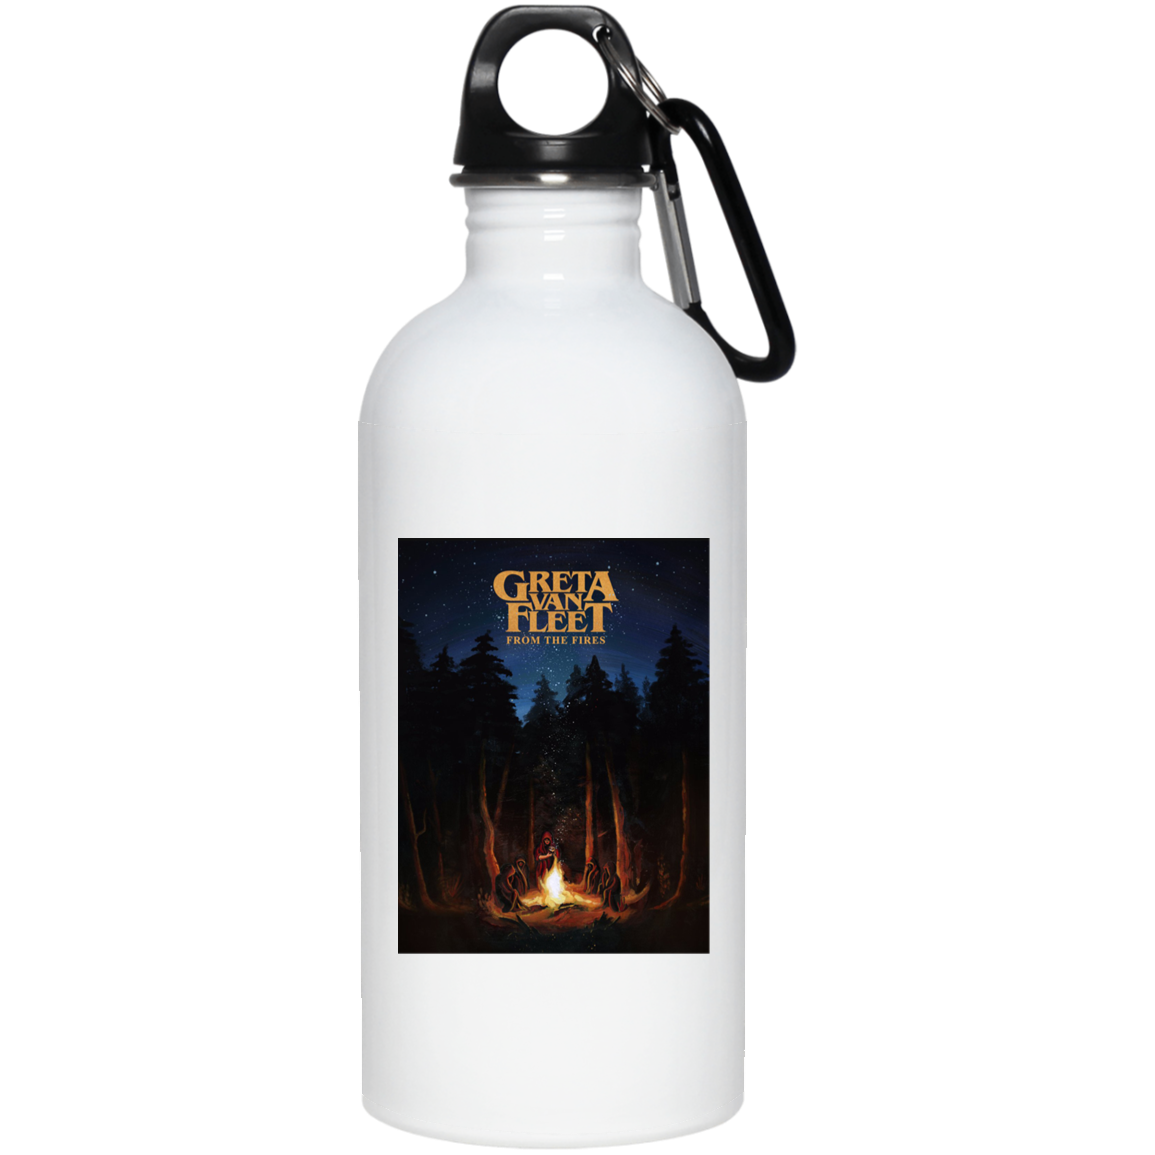 Greta Van Fleet From The Fires 23663 20 oz. Stainless Steel Water Bottle